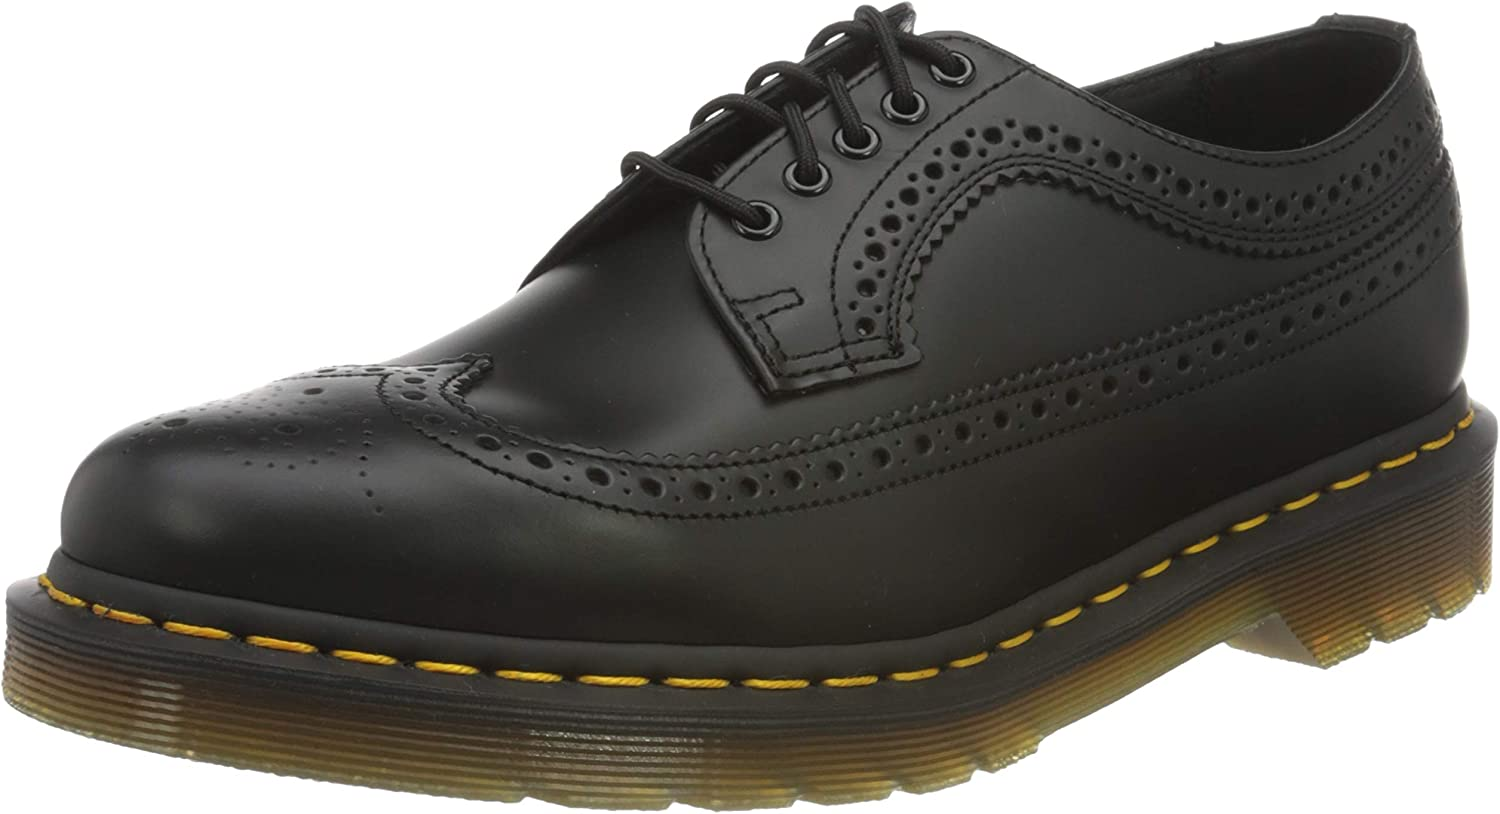 Dr. Martens Max 80% OFF 3989 Brogue Year-end gift BEX 3-Eye Wingtip Leather Shoe for Men